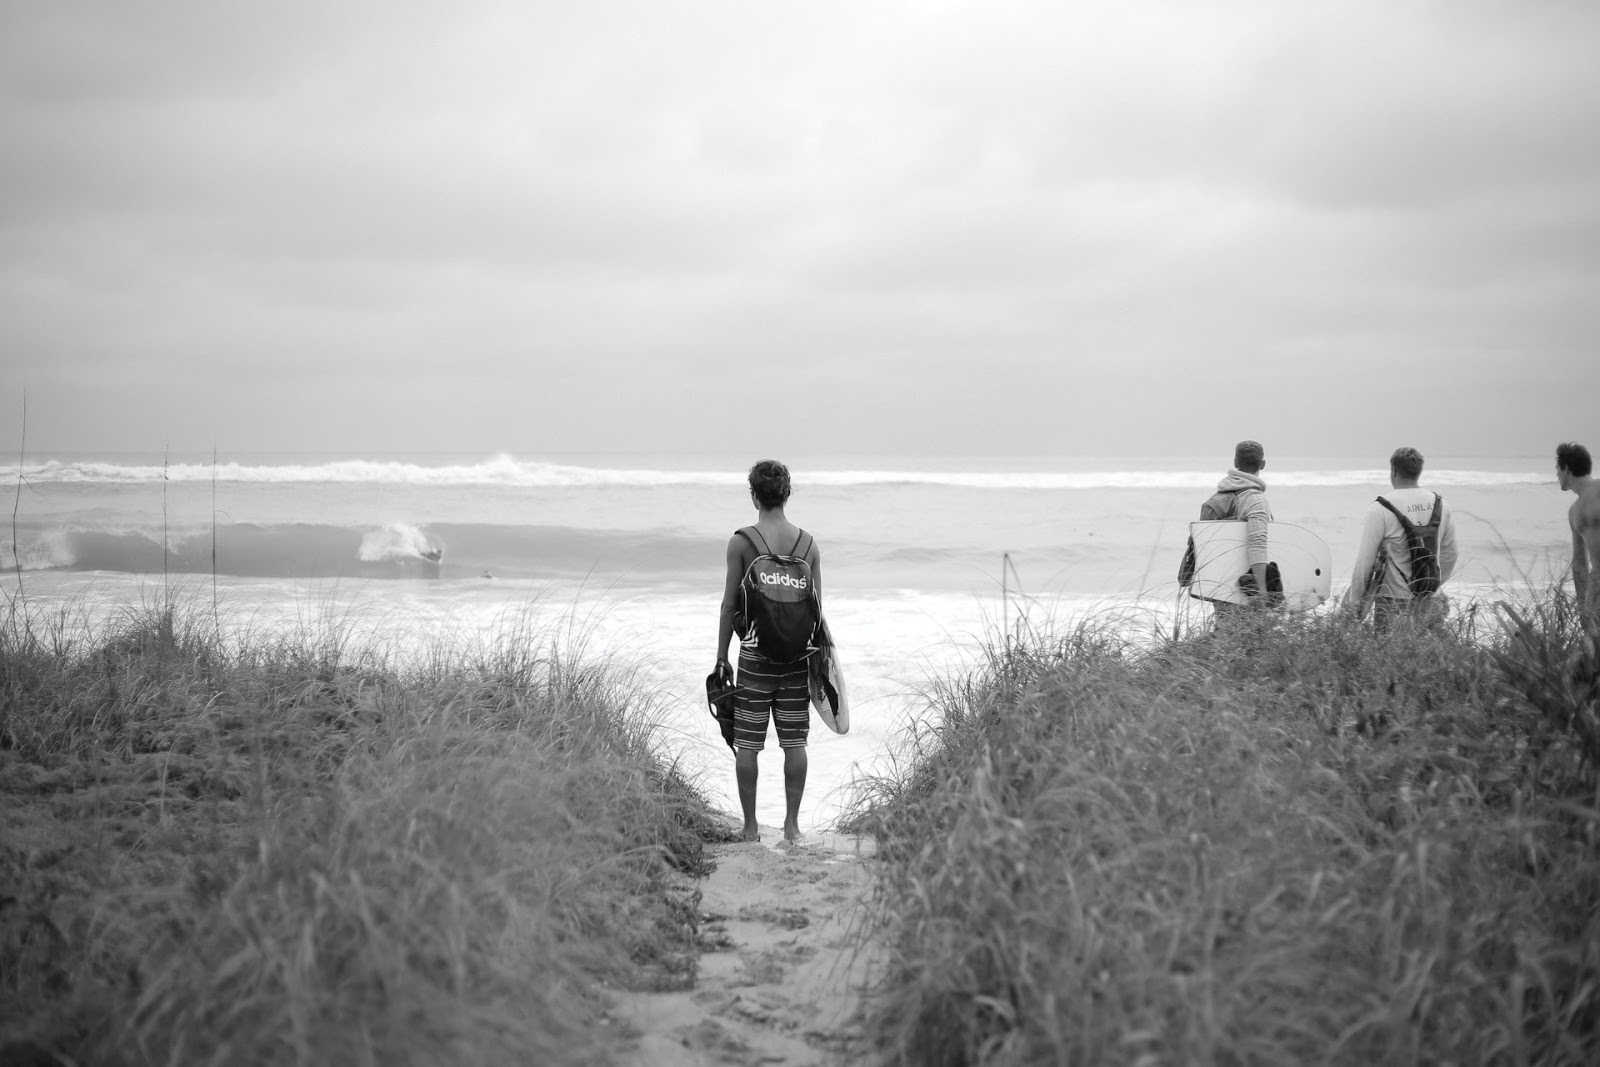 a surfer looking out at the waves in the ocean